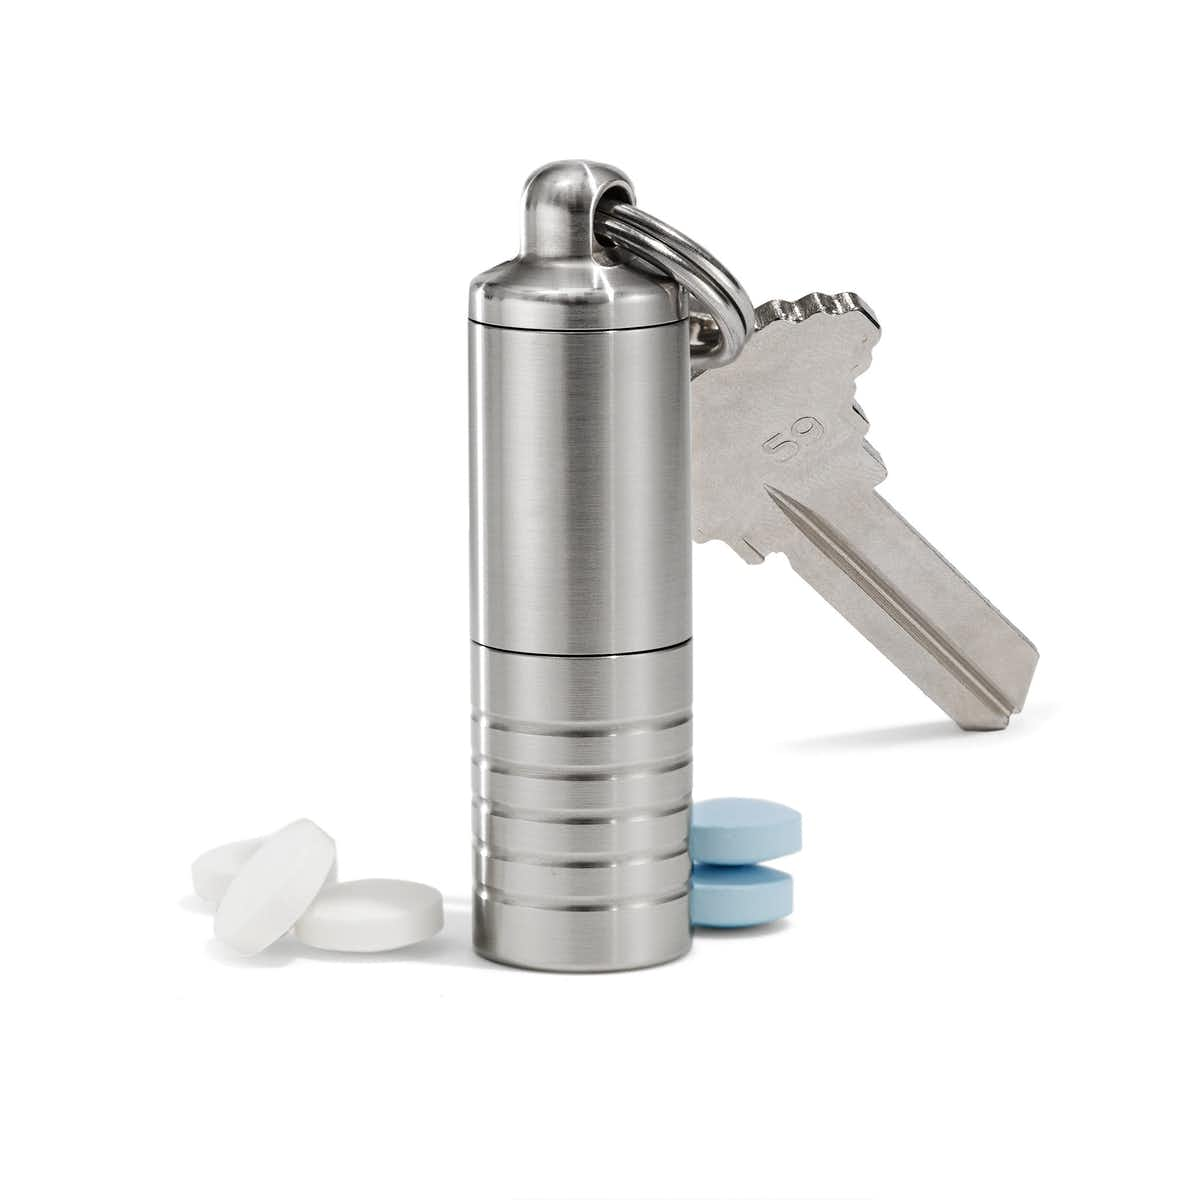 Slim Dual Chamber Pill Holder in Stainless Steel